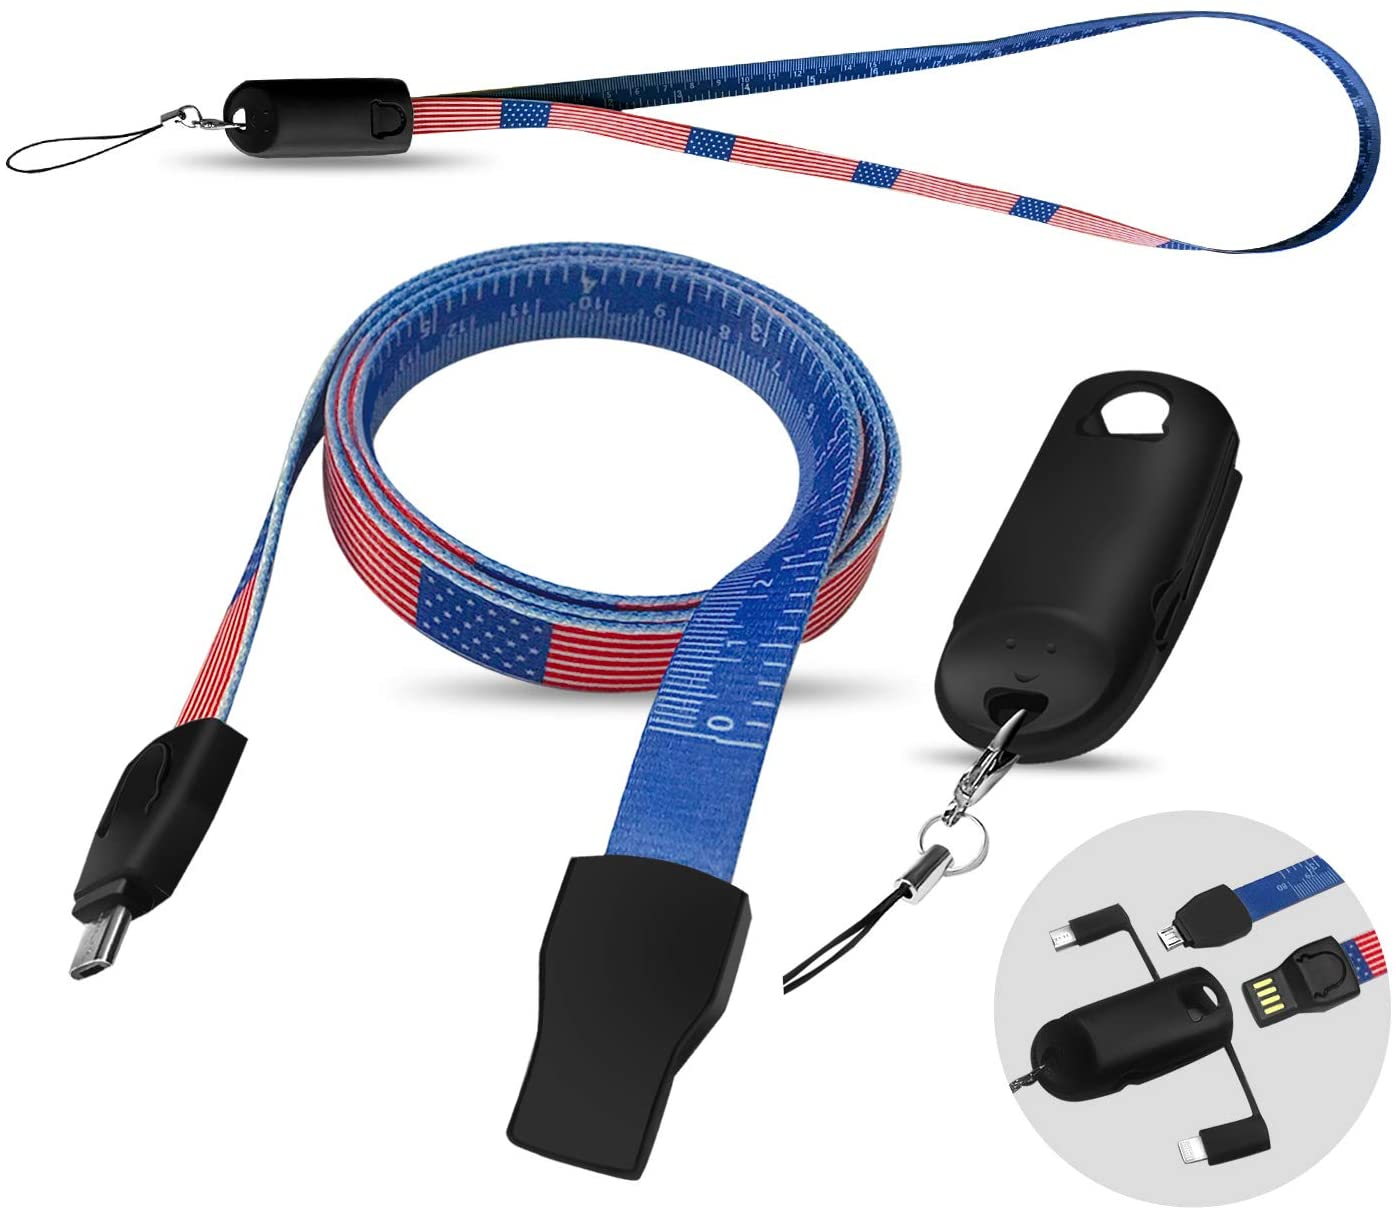 Stars and Stripes Tape Measure USB Cable Badge Lanyard – ABCOOL EDC Multi Functional Phone Charging Ruler Replacement Neck ID Strap with American Flag for Office Workshop Plant School